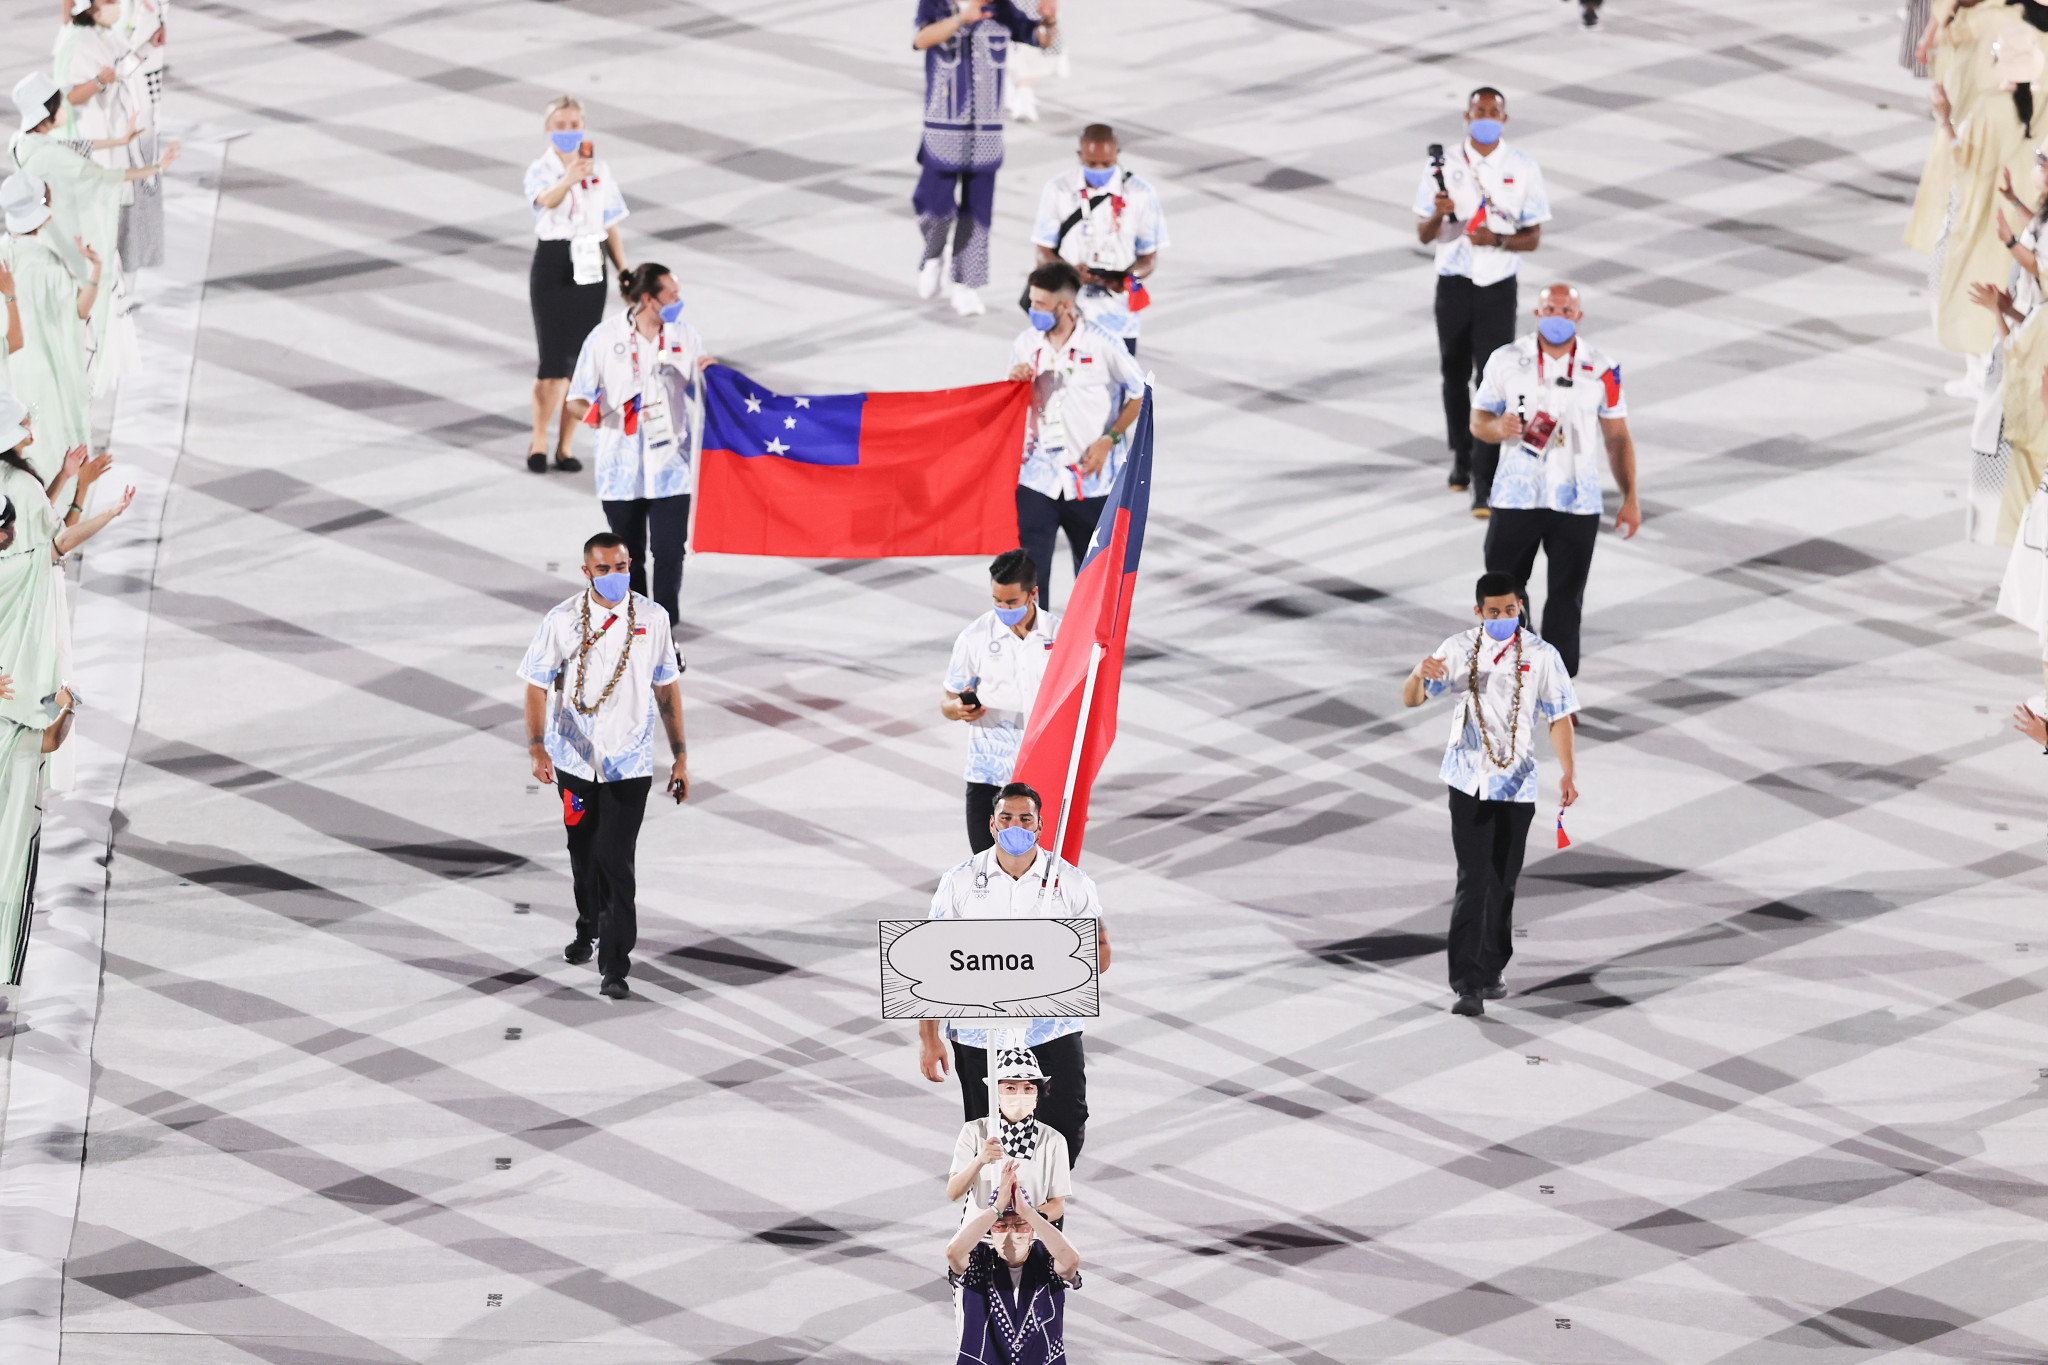 Only overseas athletes were permitted to represent Samoa at Tokyo 2020 because of the closure of the country's border due to COVID-19 ©Getty Images